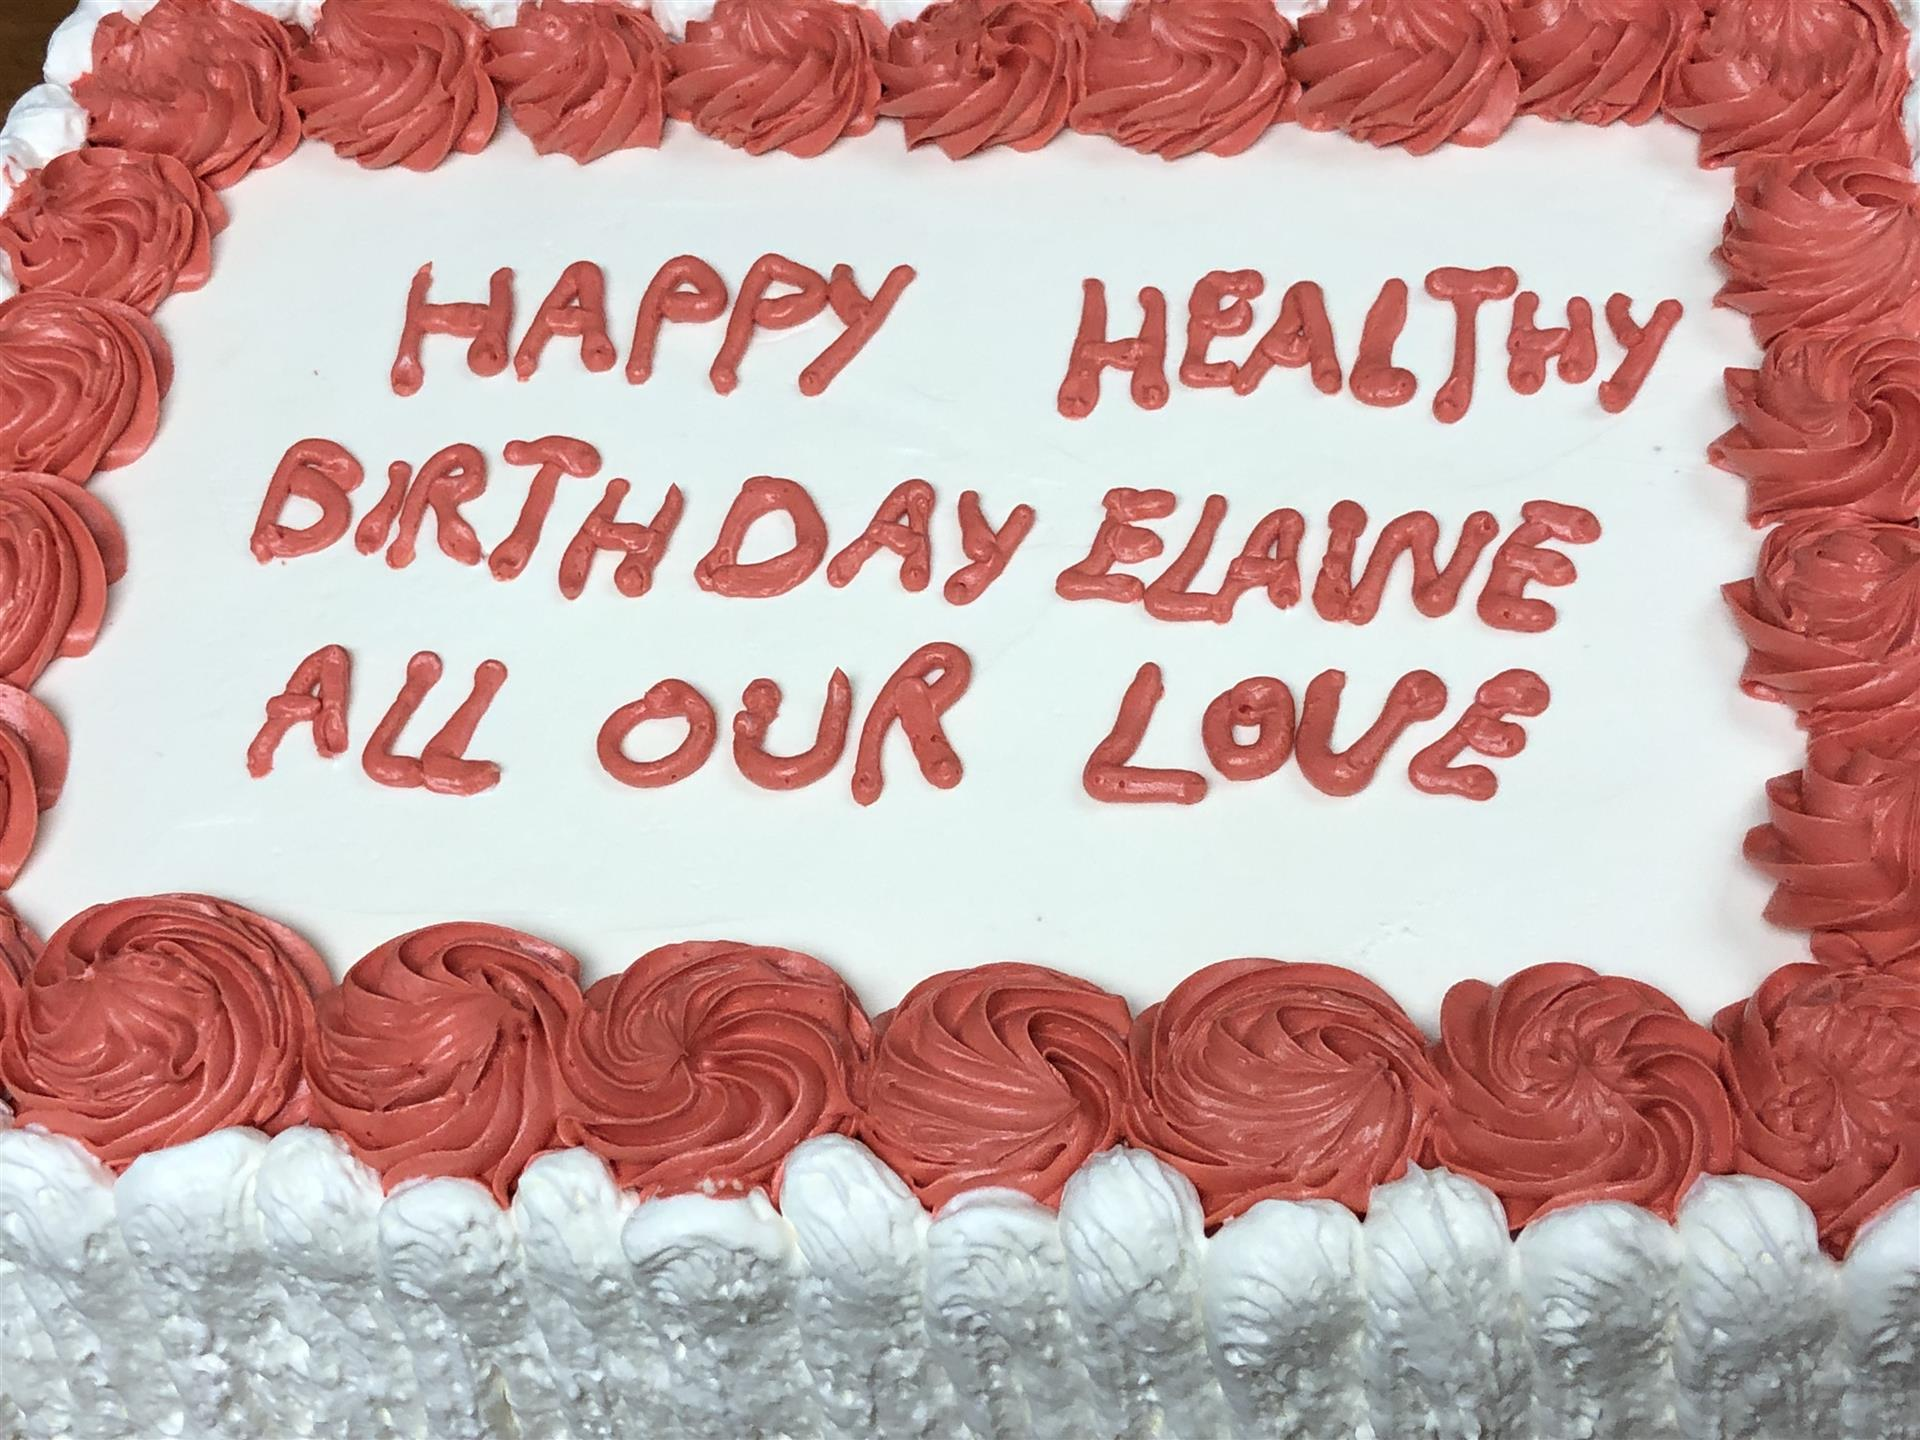 A cake that says Happy Healthy Birthday Elaine All Our Love, written in frosting